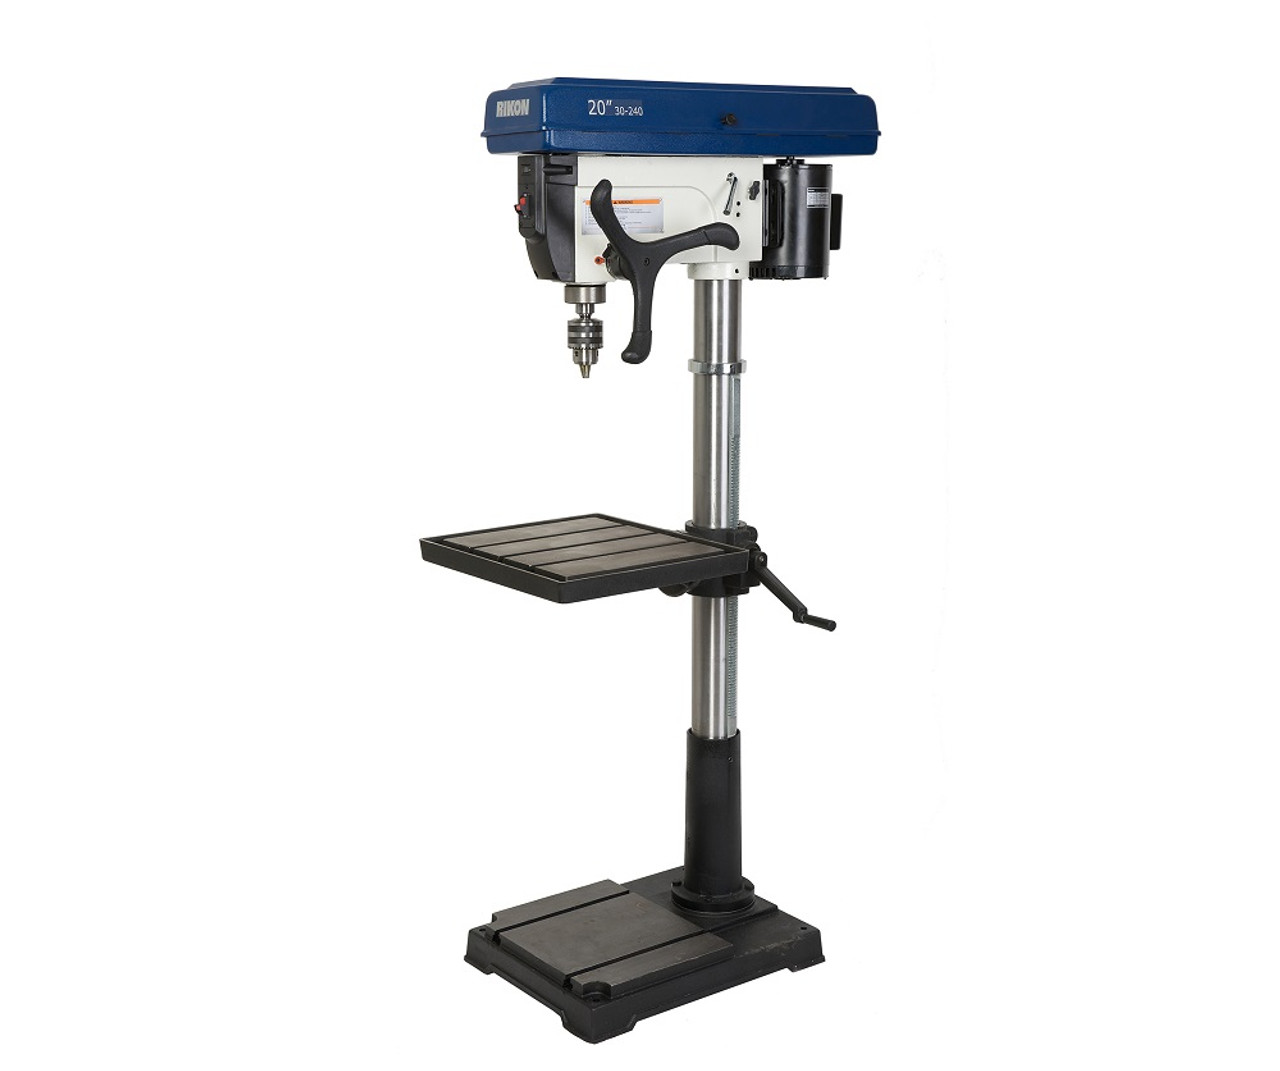 Awesome Rikon 30 240 20 Floor Standing Drill Press Caraccident5 Cool Chair Designs And Ideas Caraccident5Info